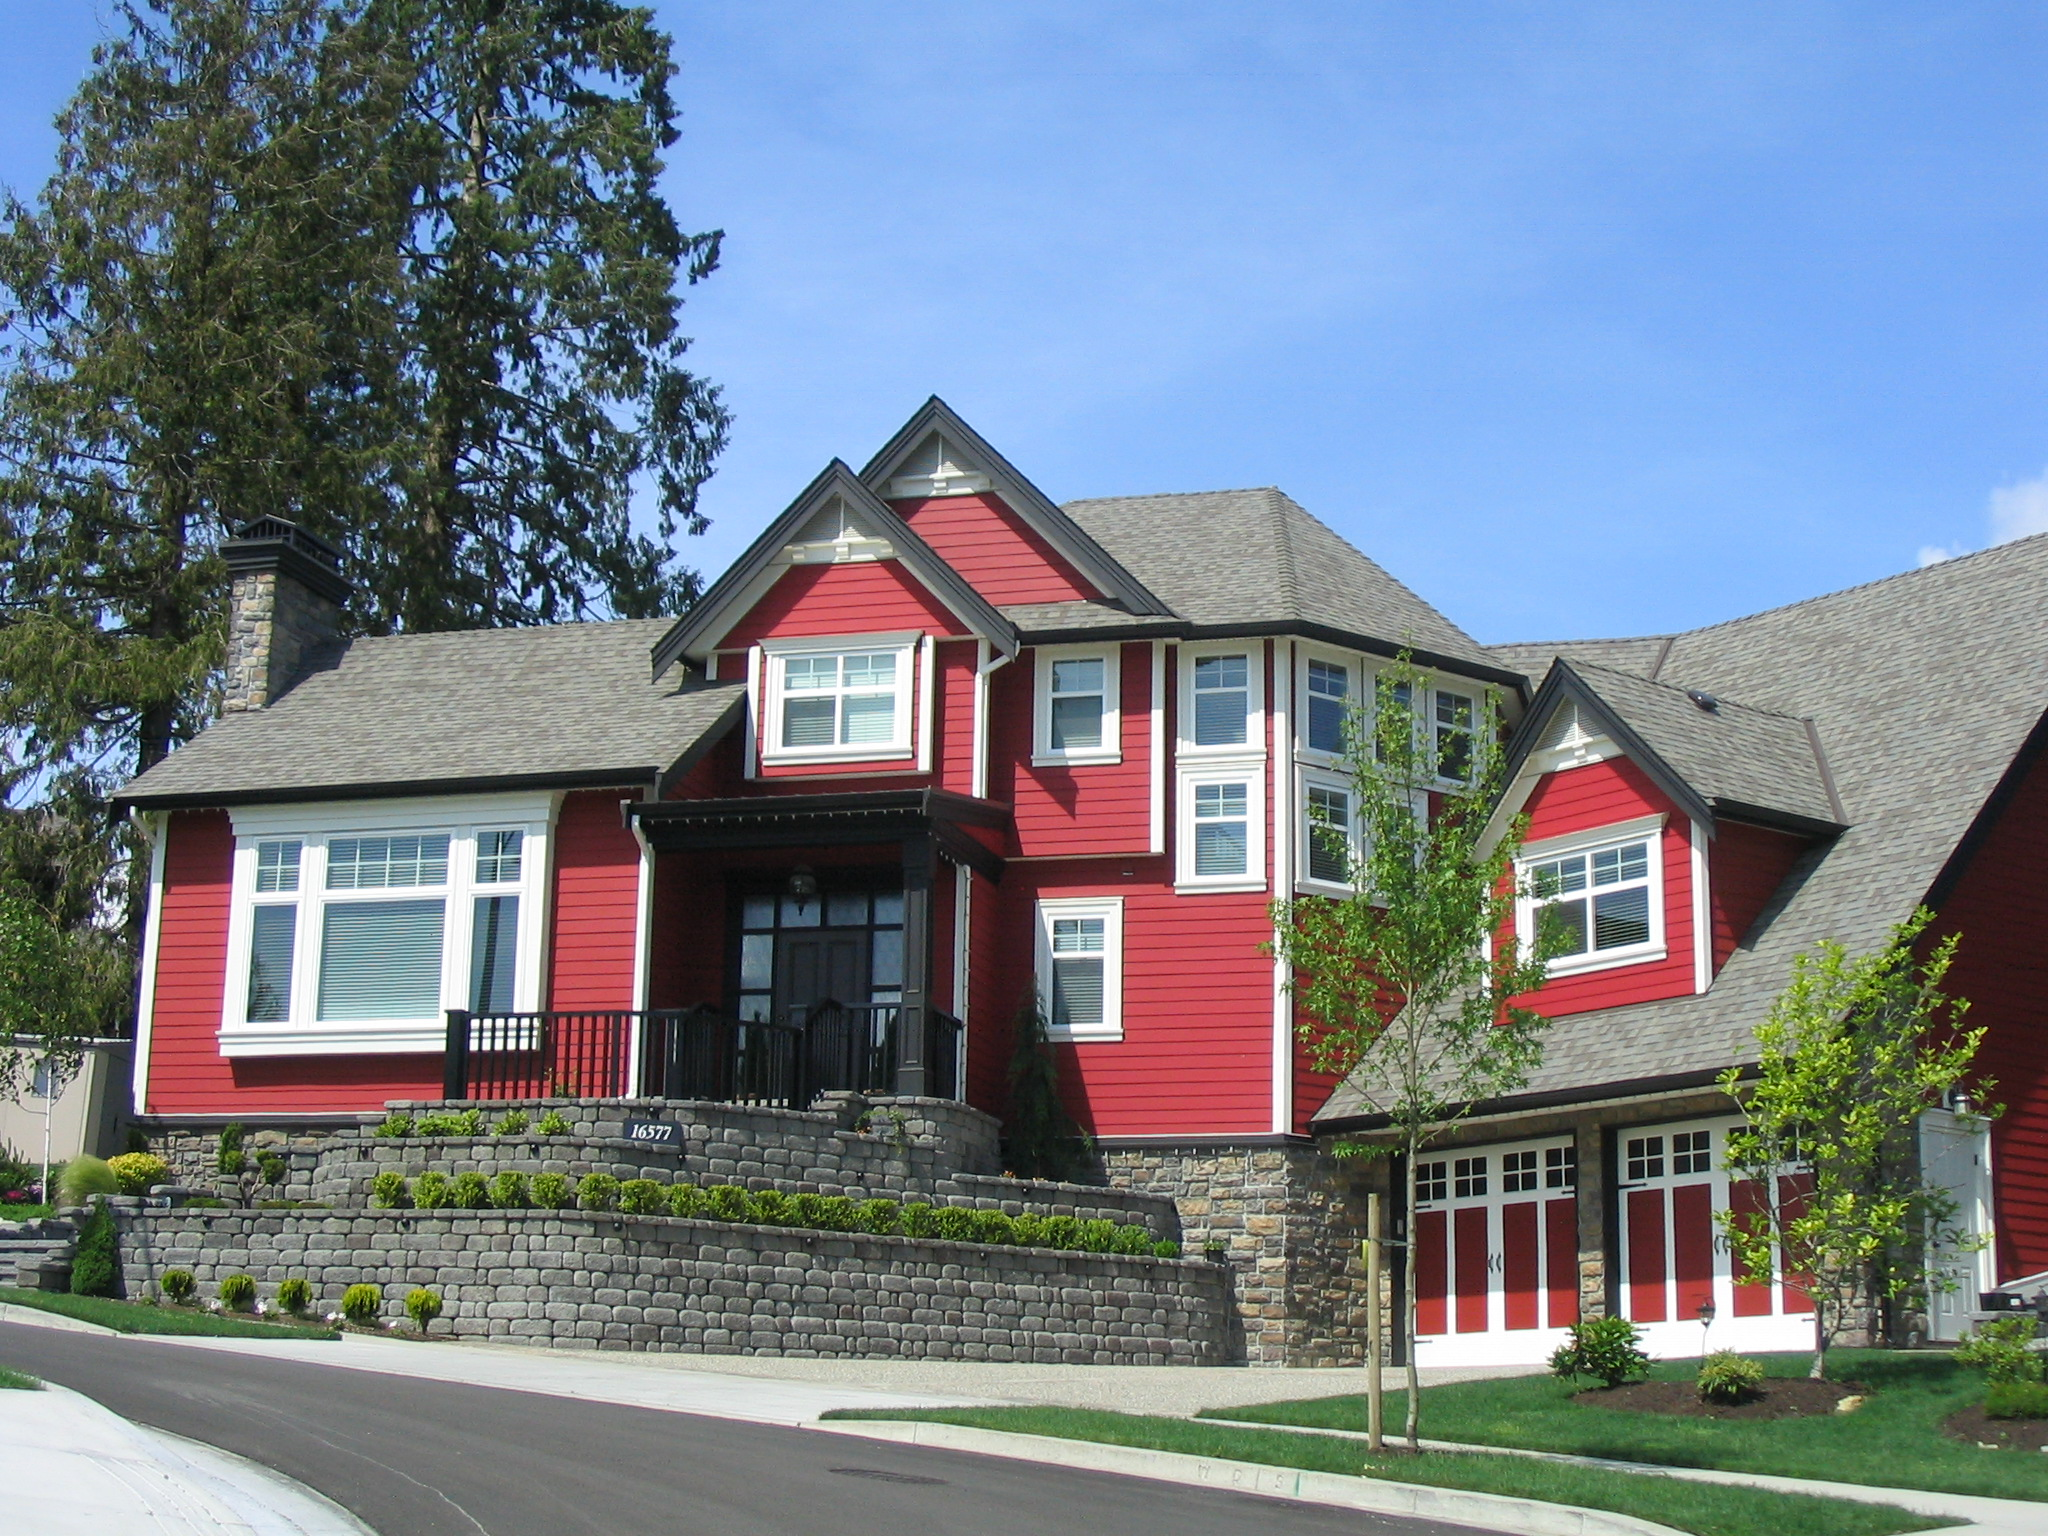 Five Ways To Enhance A Home Exterior During National Curb